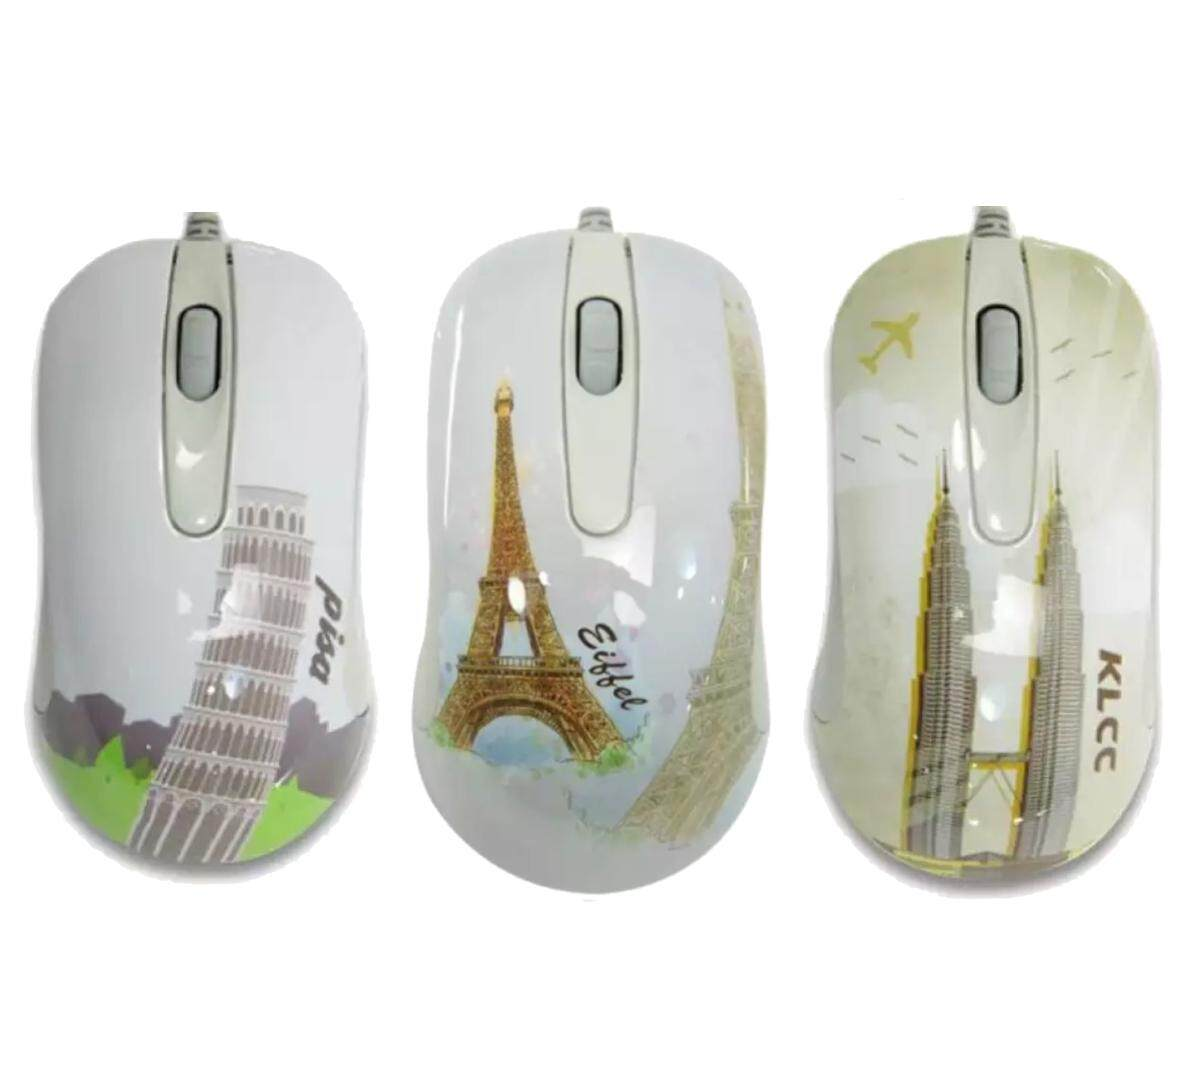 Enco Tower Series Optical Mouse Wired USB (Pica / Eiffel / KLCC Edition)